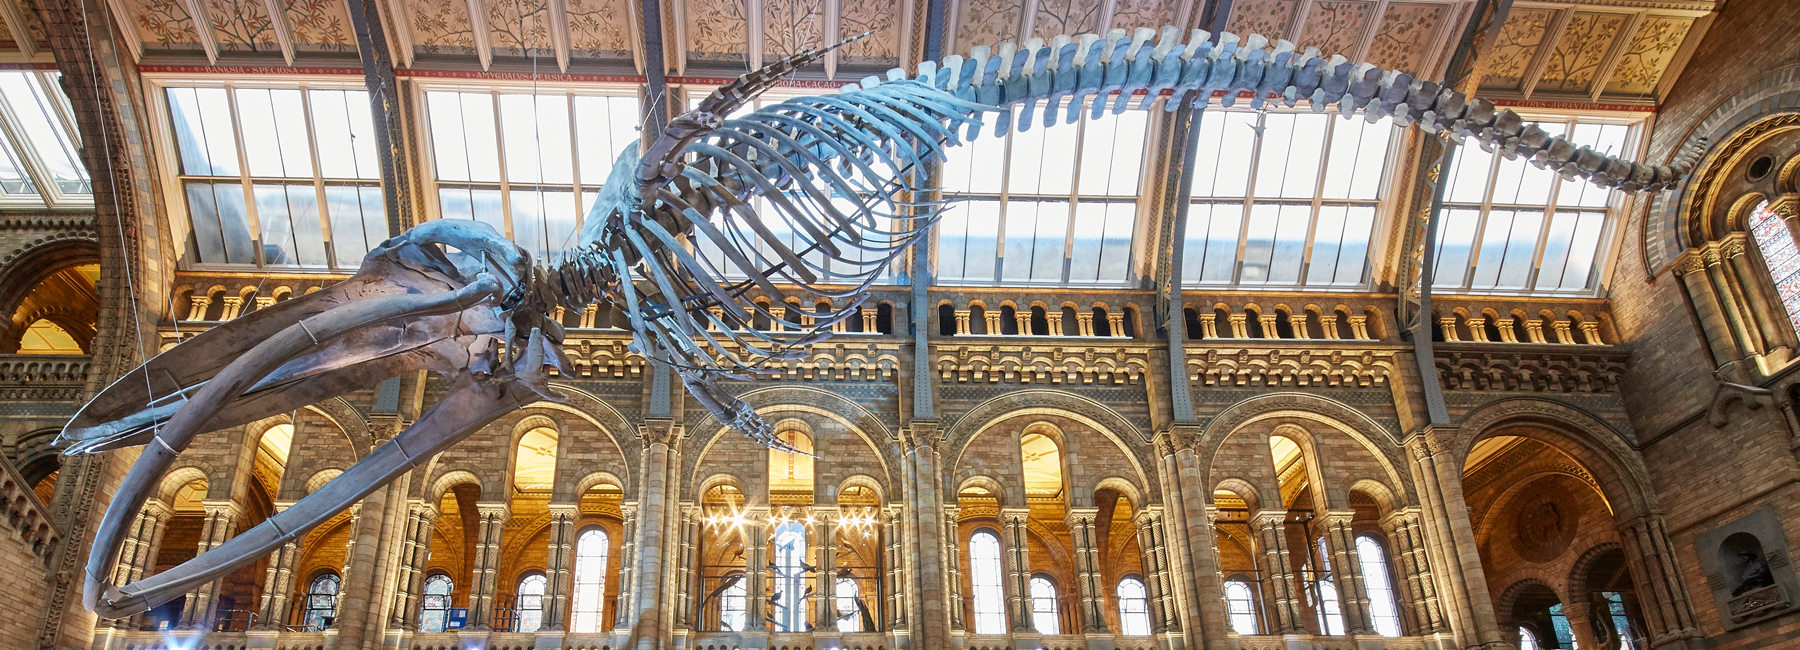 blue-whale-skeleton-natural-history-museum-london-hintze-hall-casson-mann-designboom-